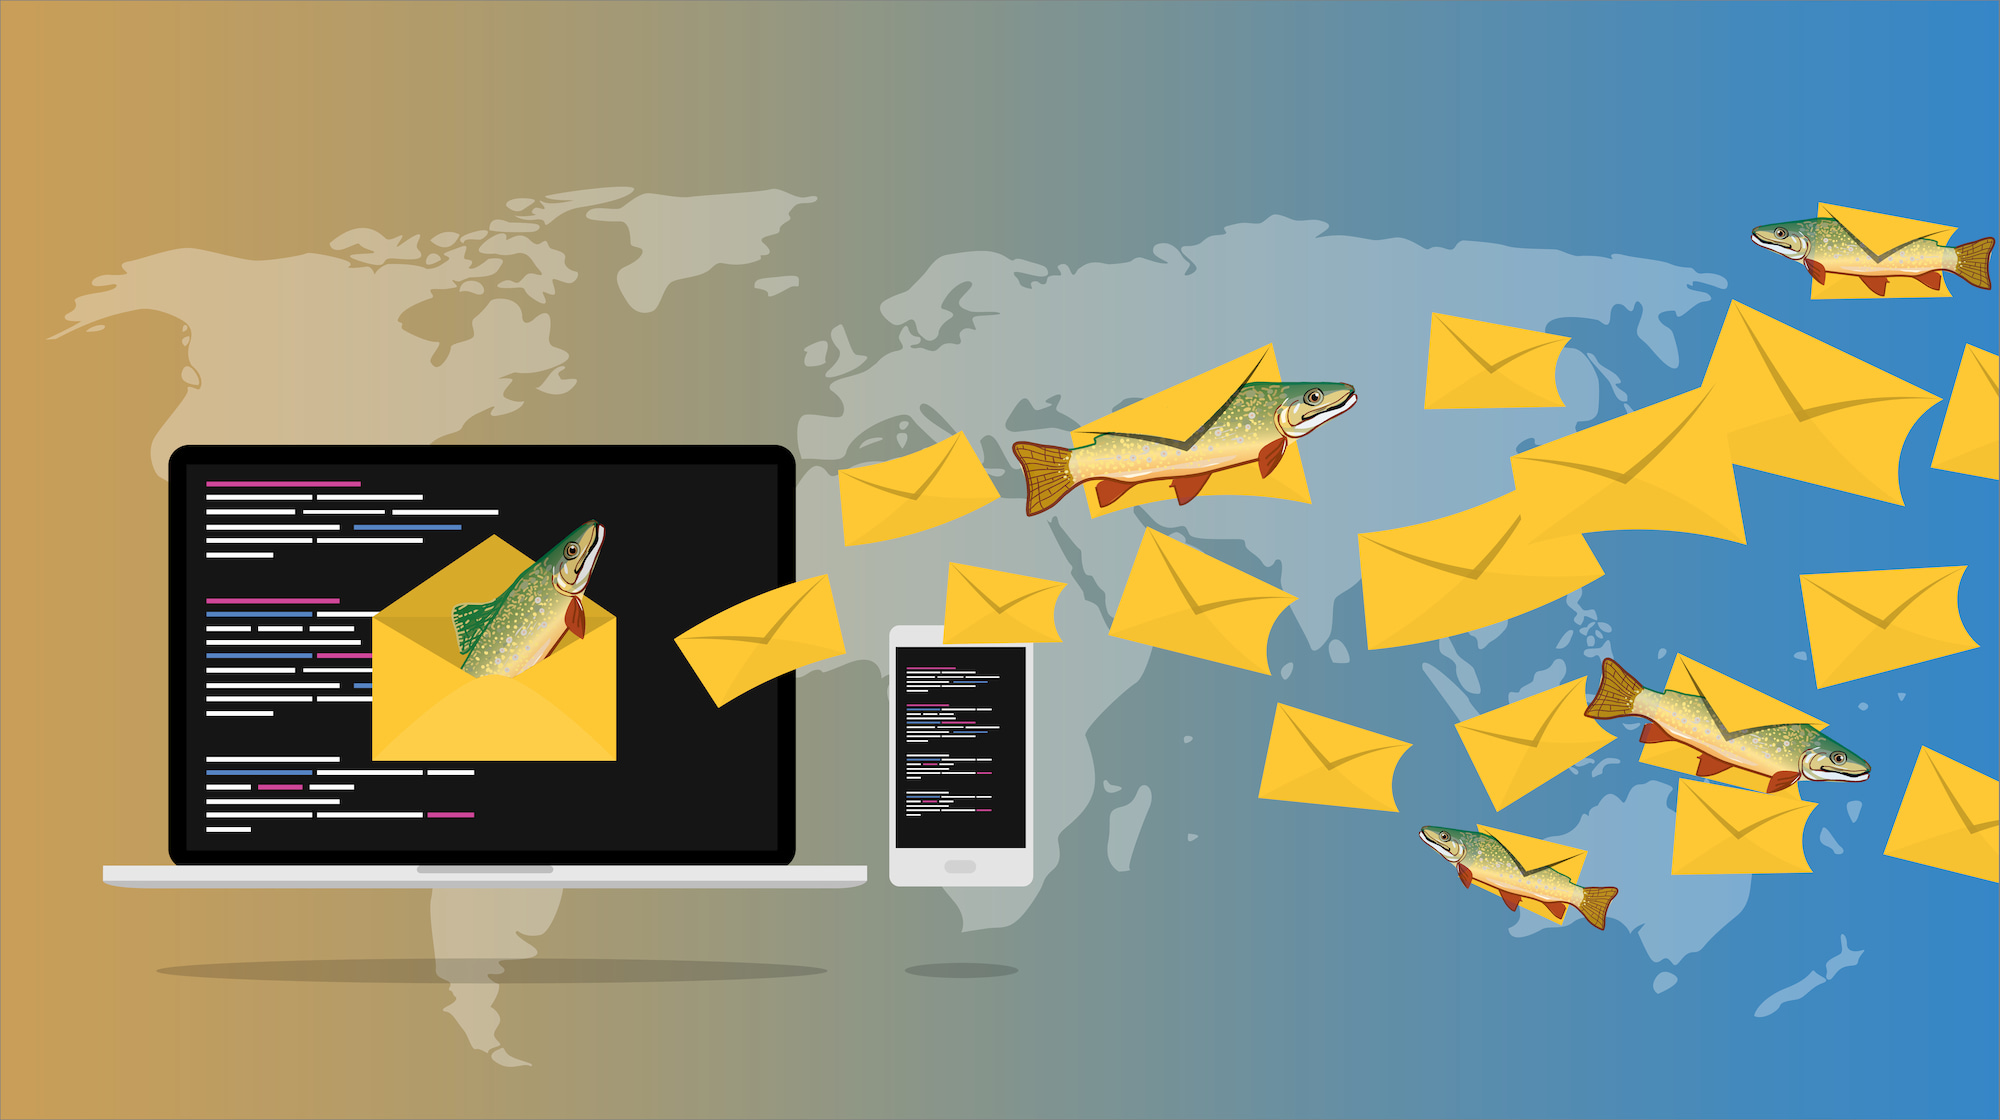 A Menace in Your Mailbox: The Case for Email Protection